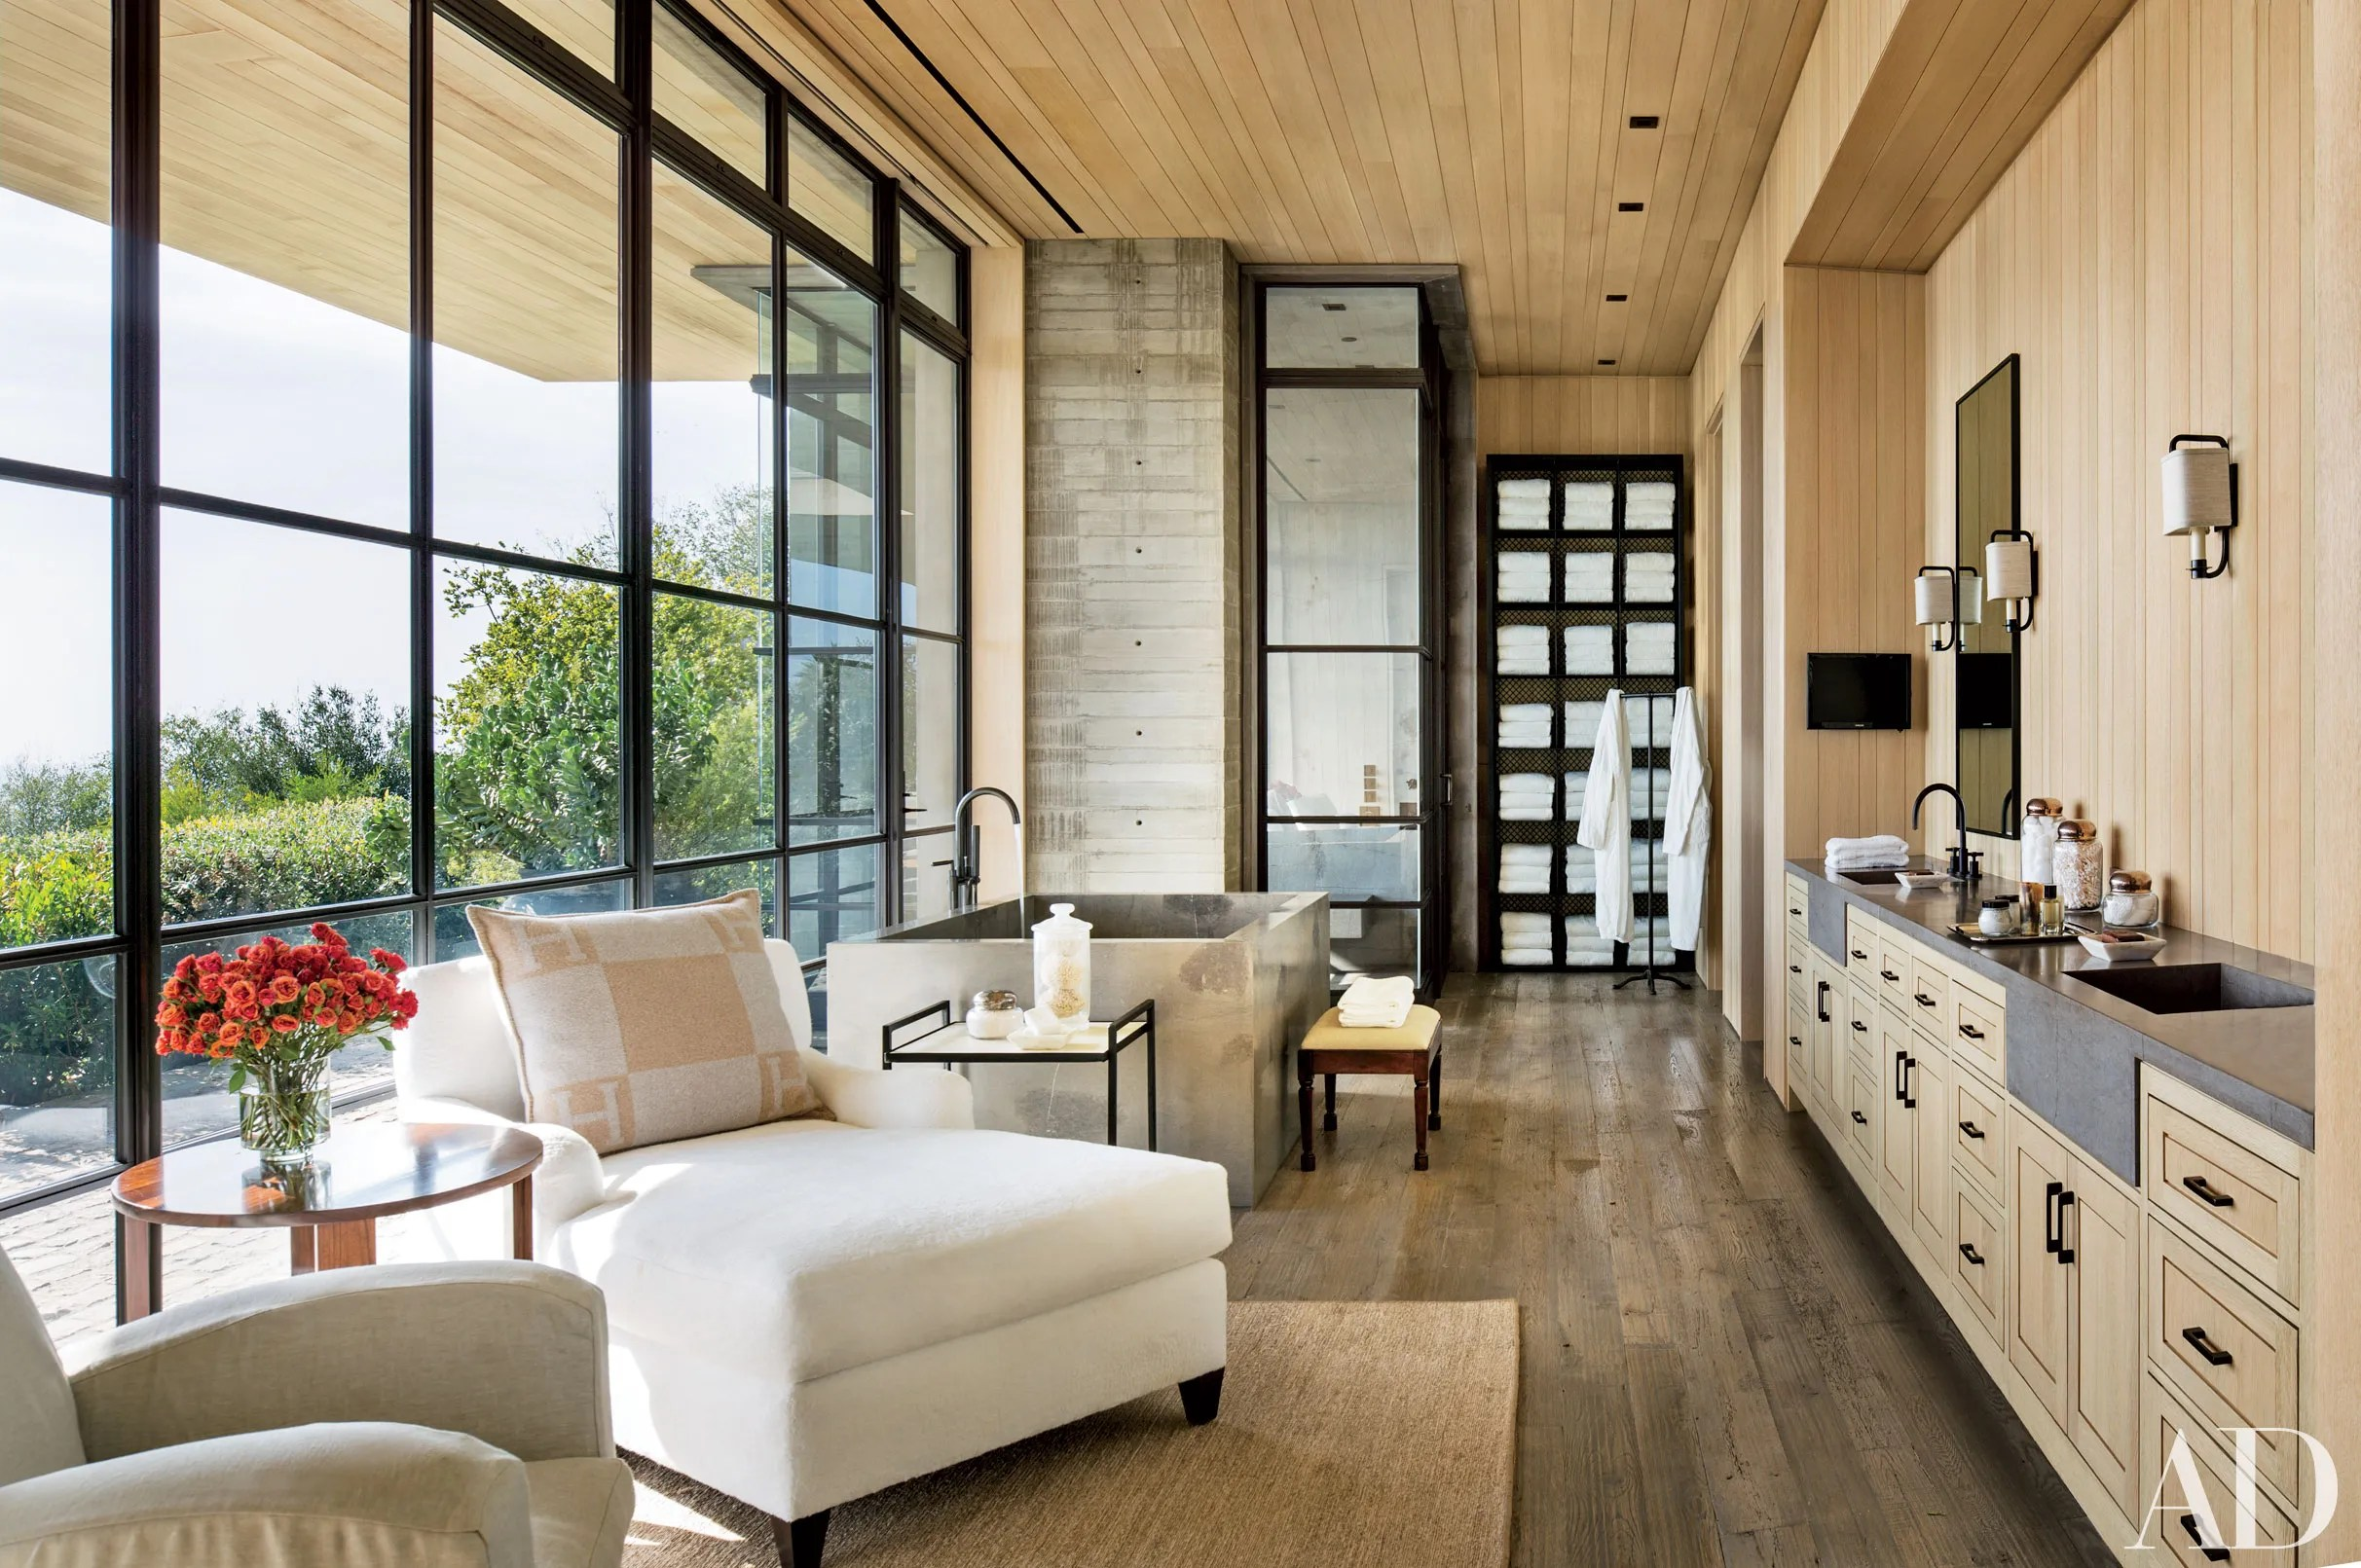 upholstered slipper chair crate and barrel dining cushions 13 luxurious bathroom design ideas photos   architectural digest